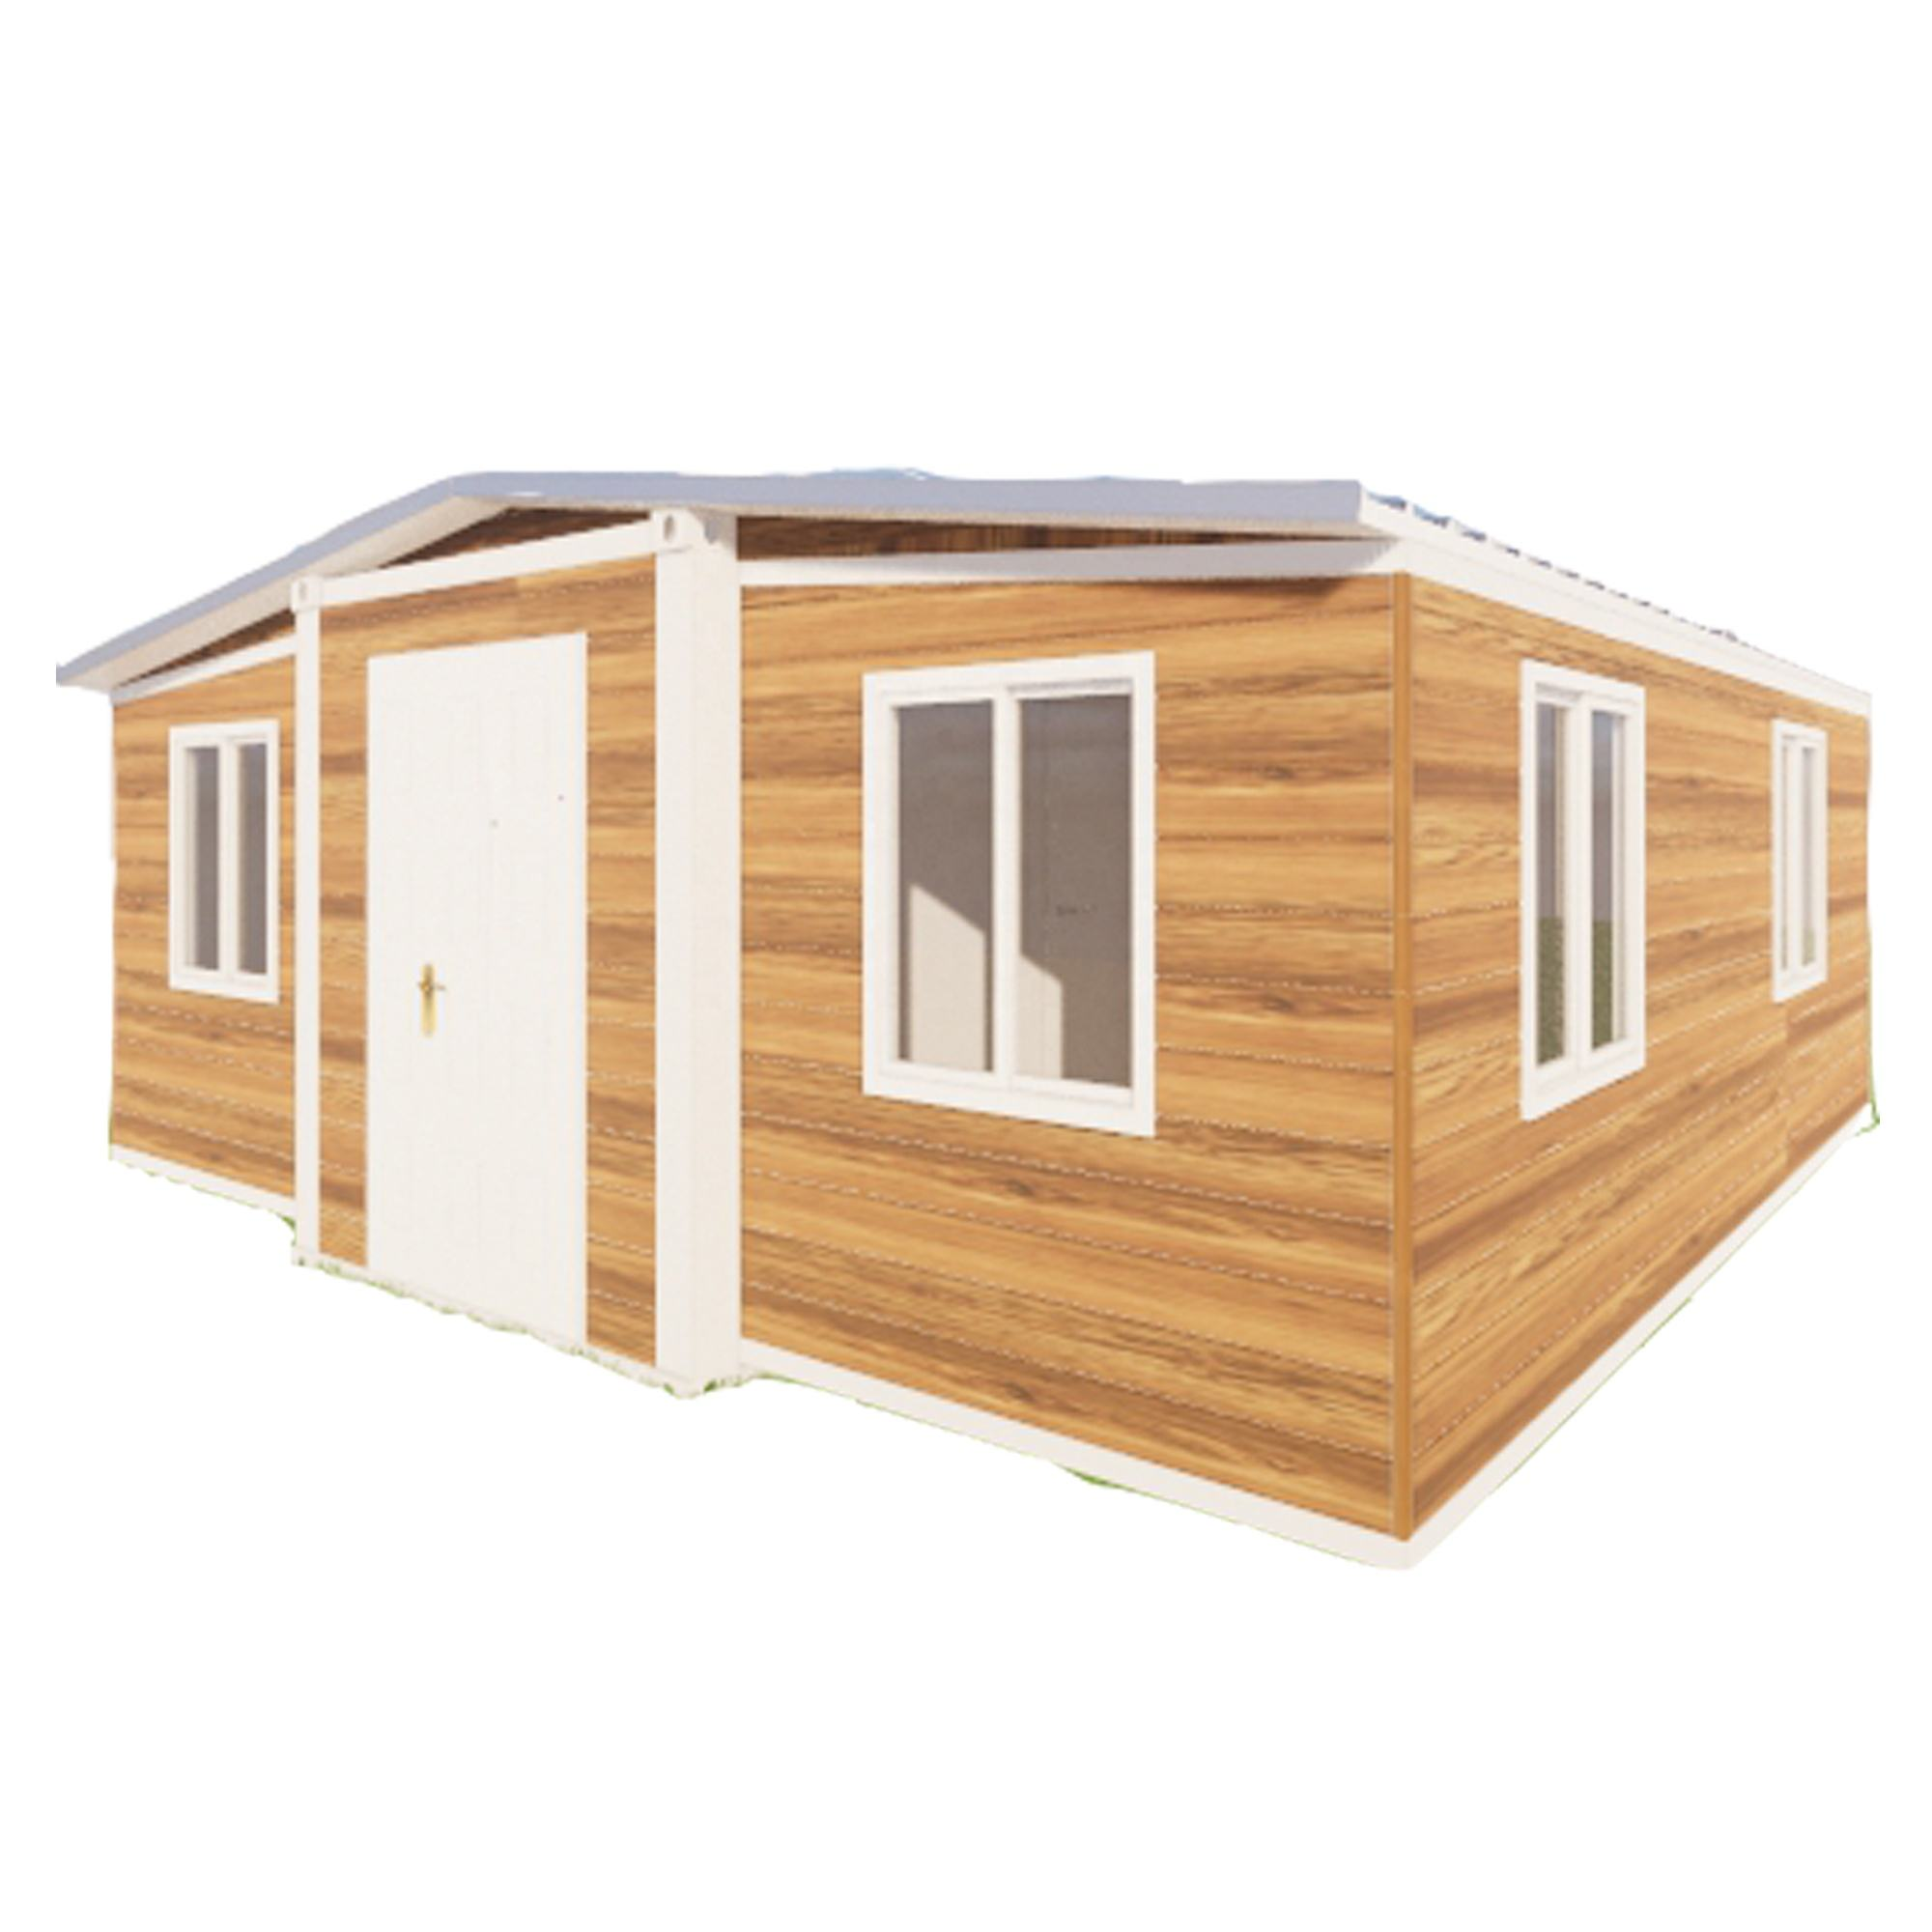 light yellow wood grain container home with 2 Bedrooms and kitchen and bathroom